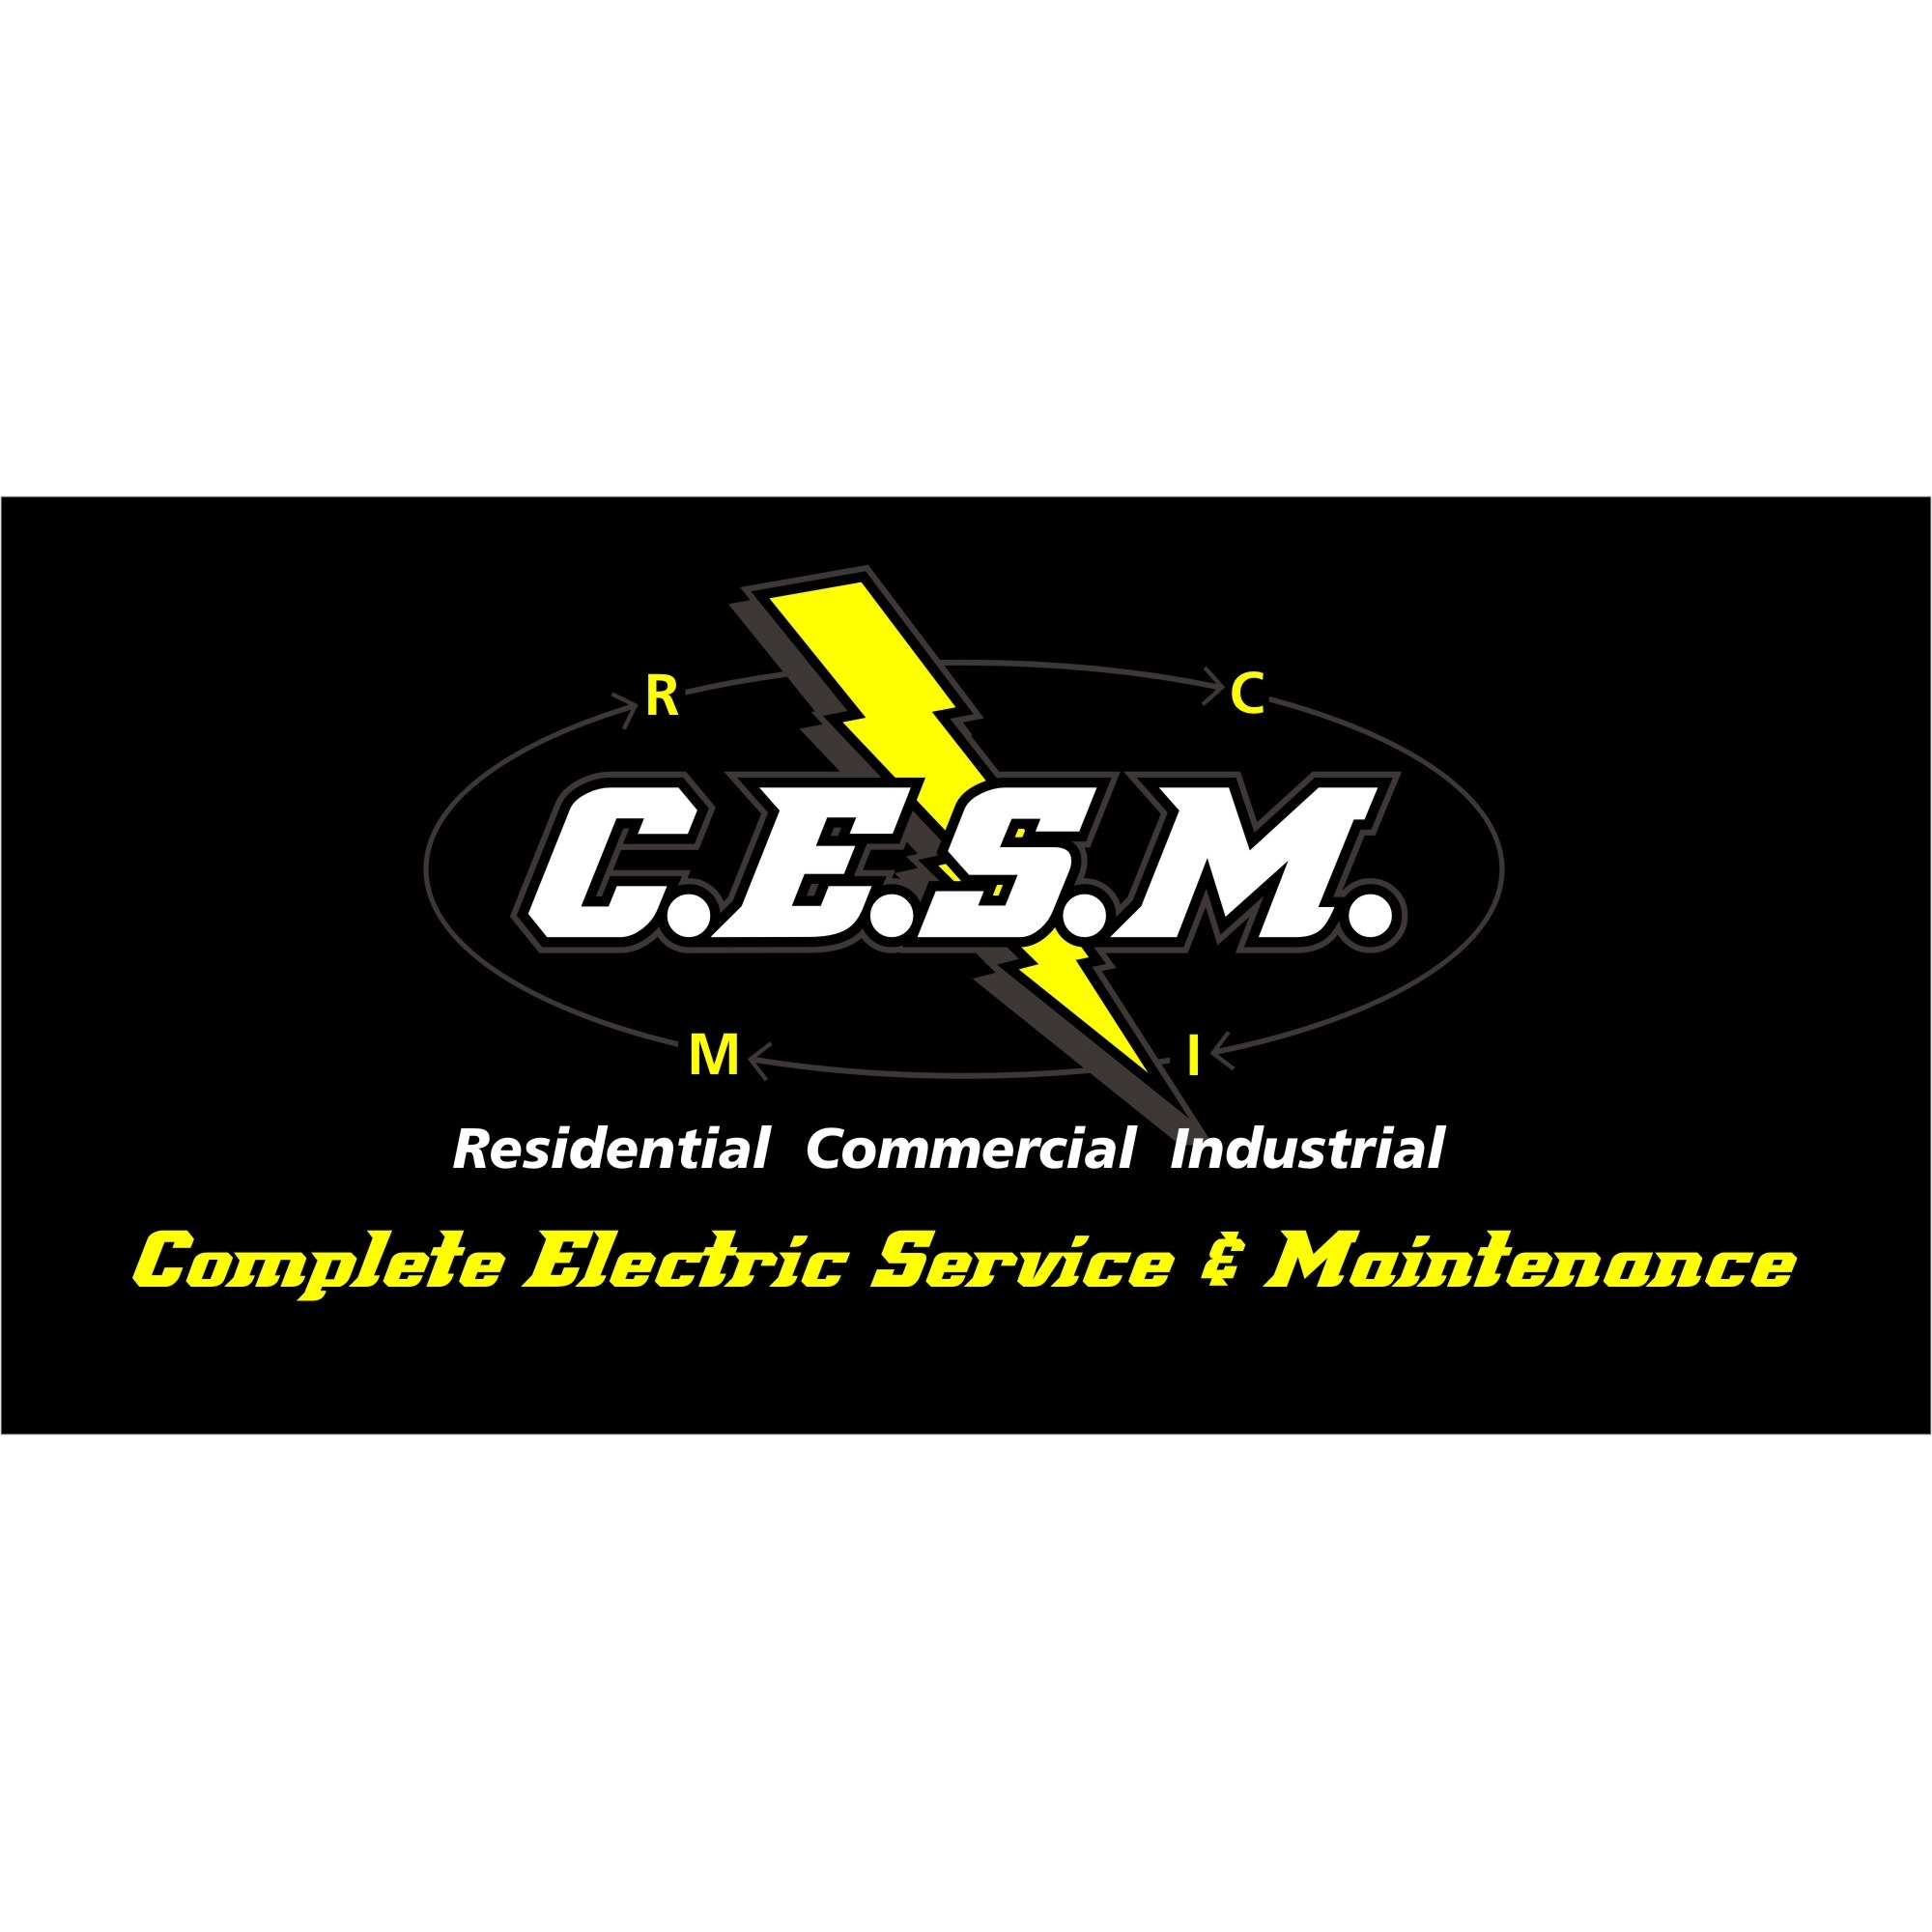 Complete Electric Service & Maintenance image 3